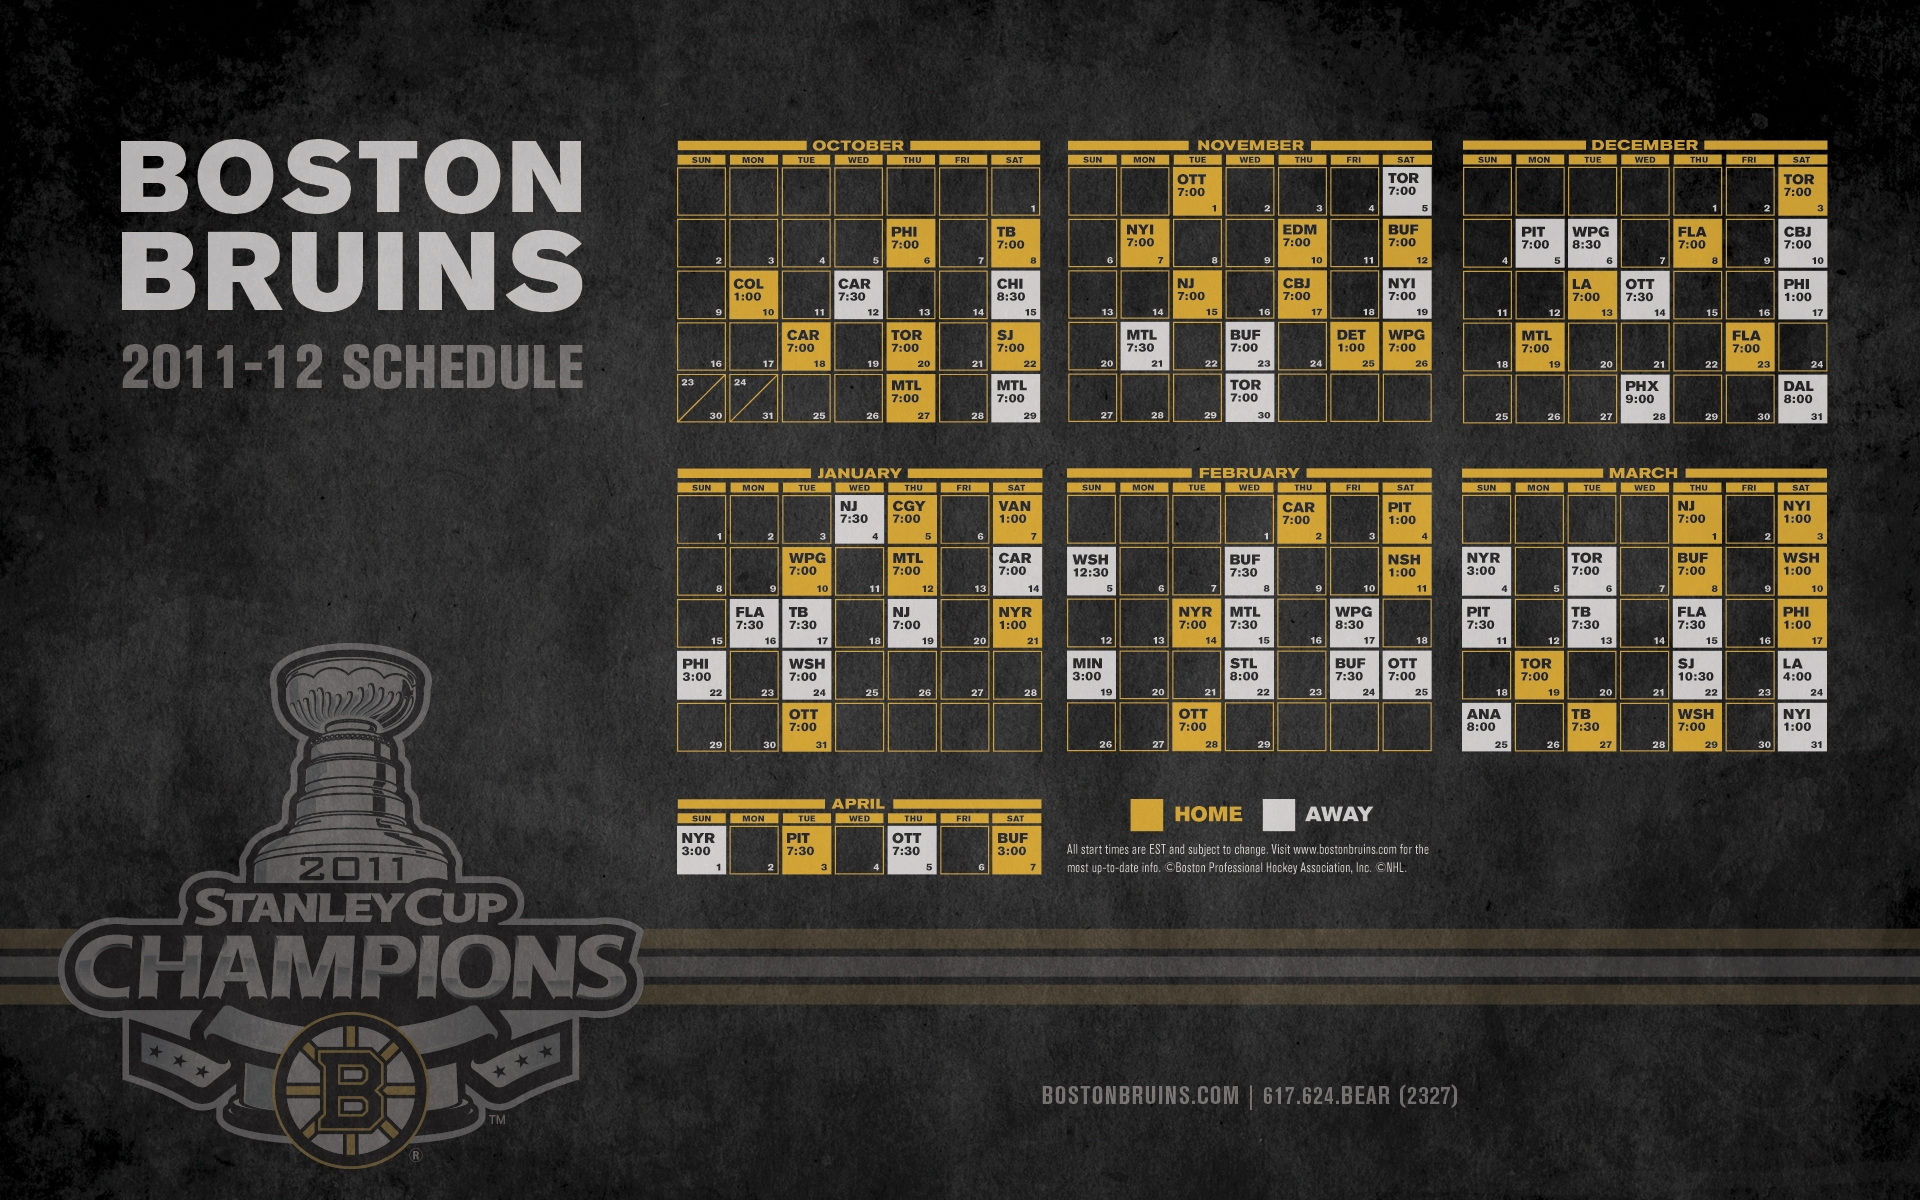 Boston Bruins Images Bruins 2011 12 Schedule Hd Wallpaper And